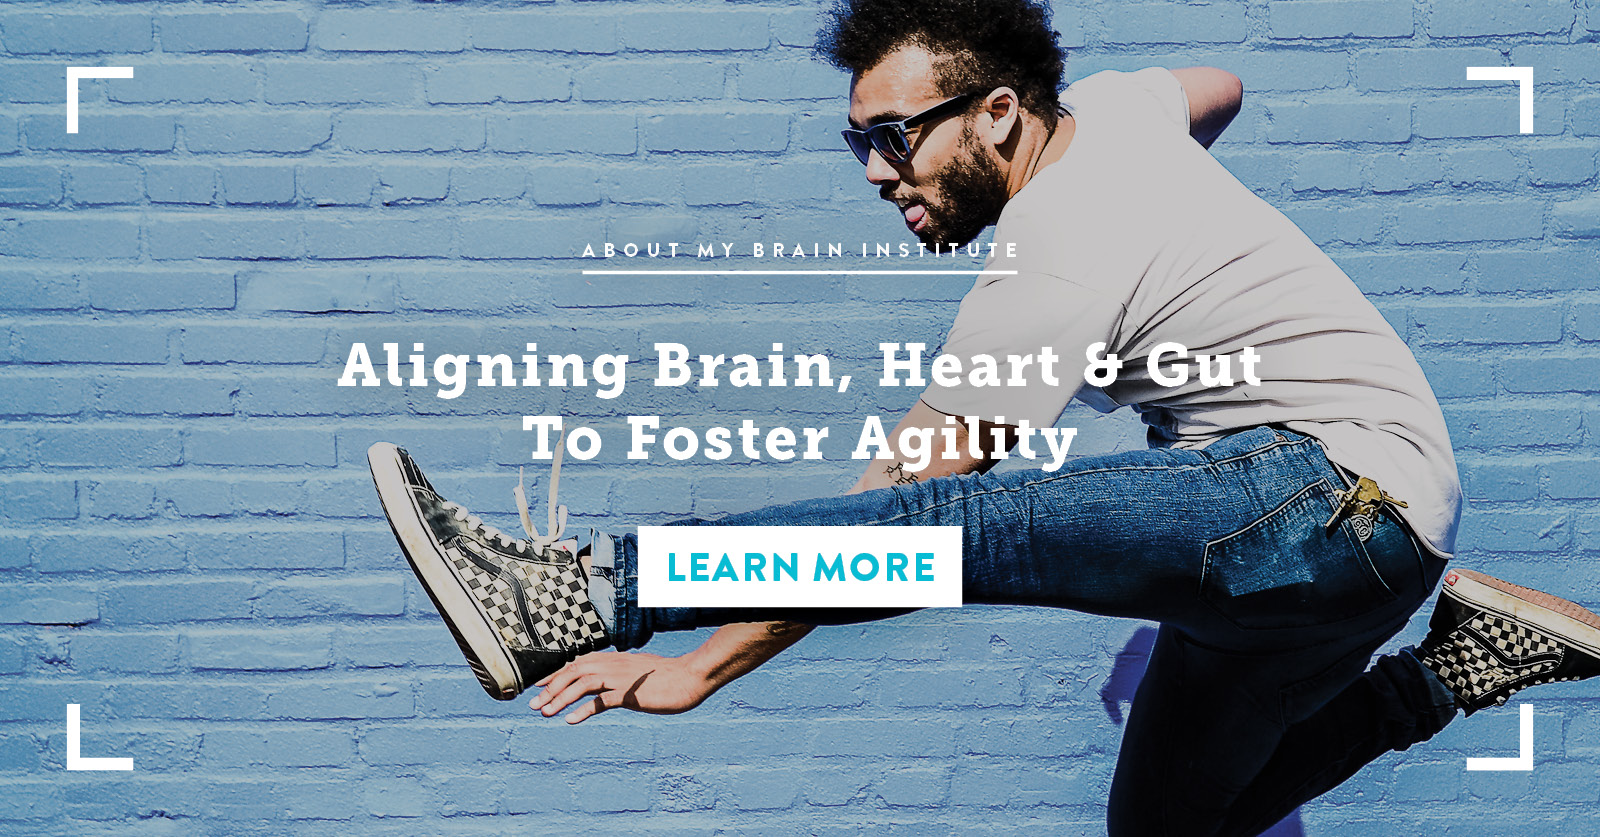 Aligning Brain, Heart & Gut to Foster Agility